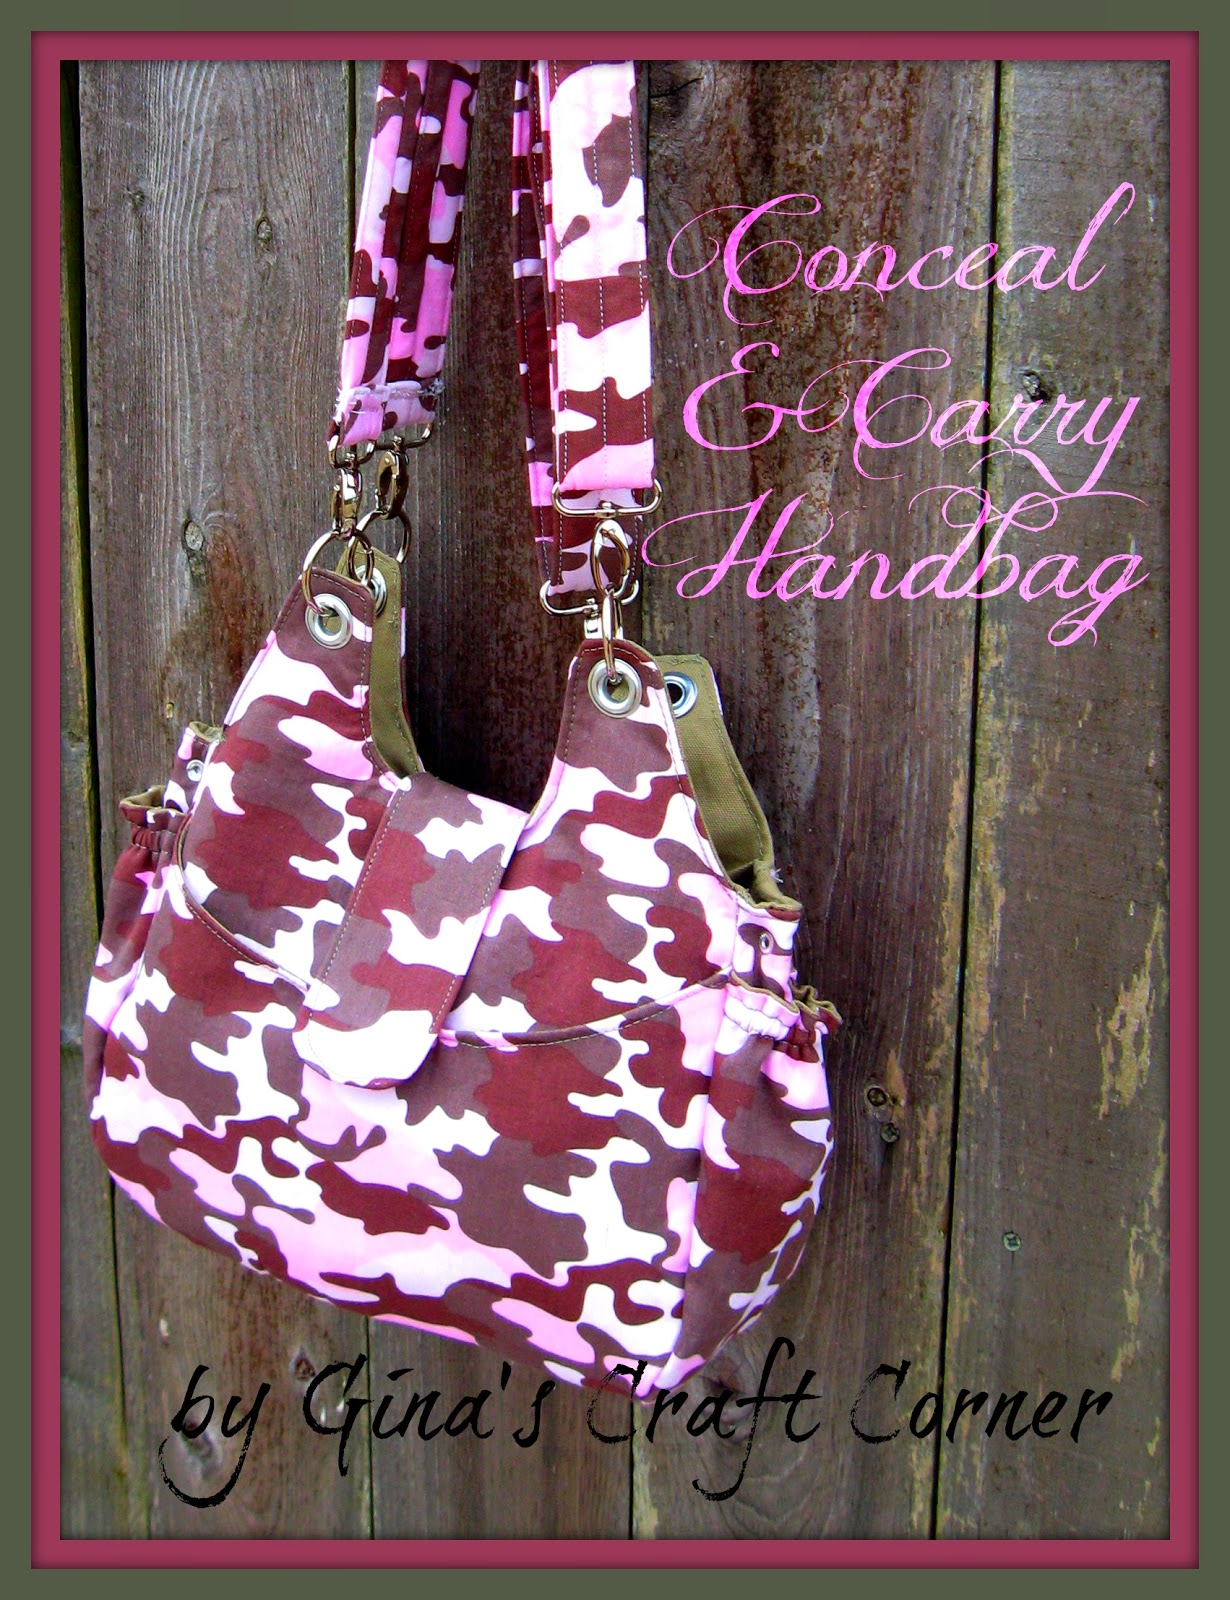 Conceal and Carry Handbag by Gina's Craft Corner